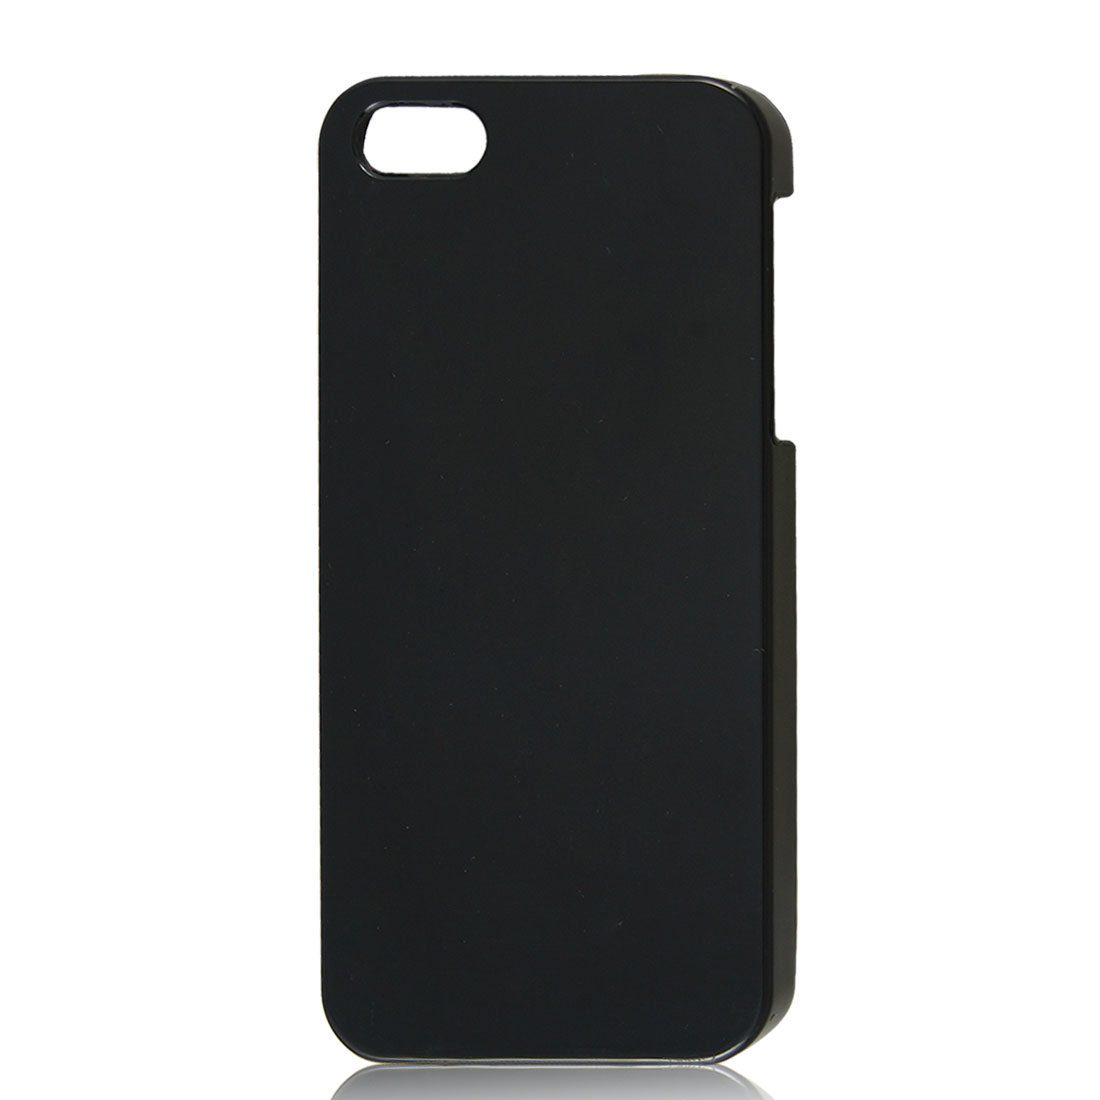 Hard Back Case Skin Cover Shell Black for Apple iPhone 5 5G